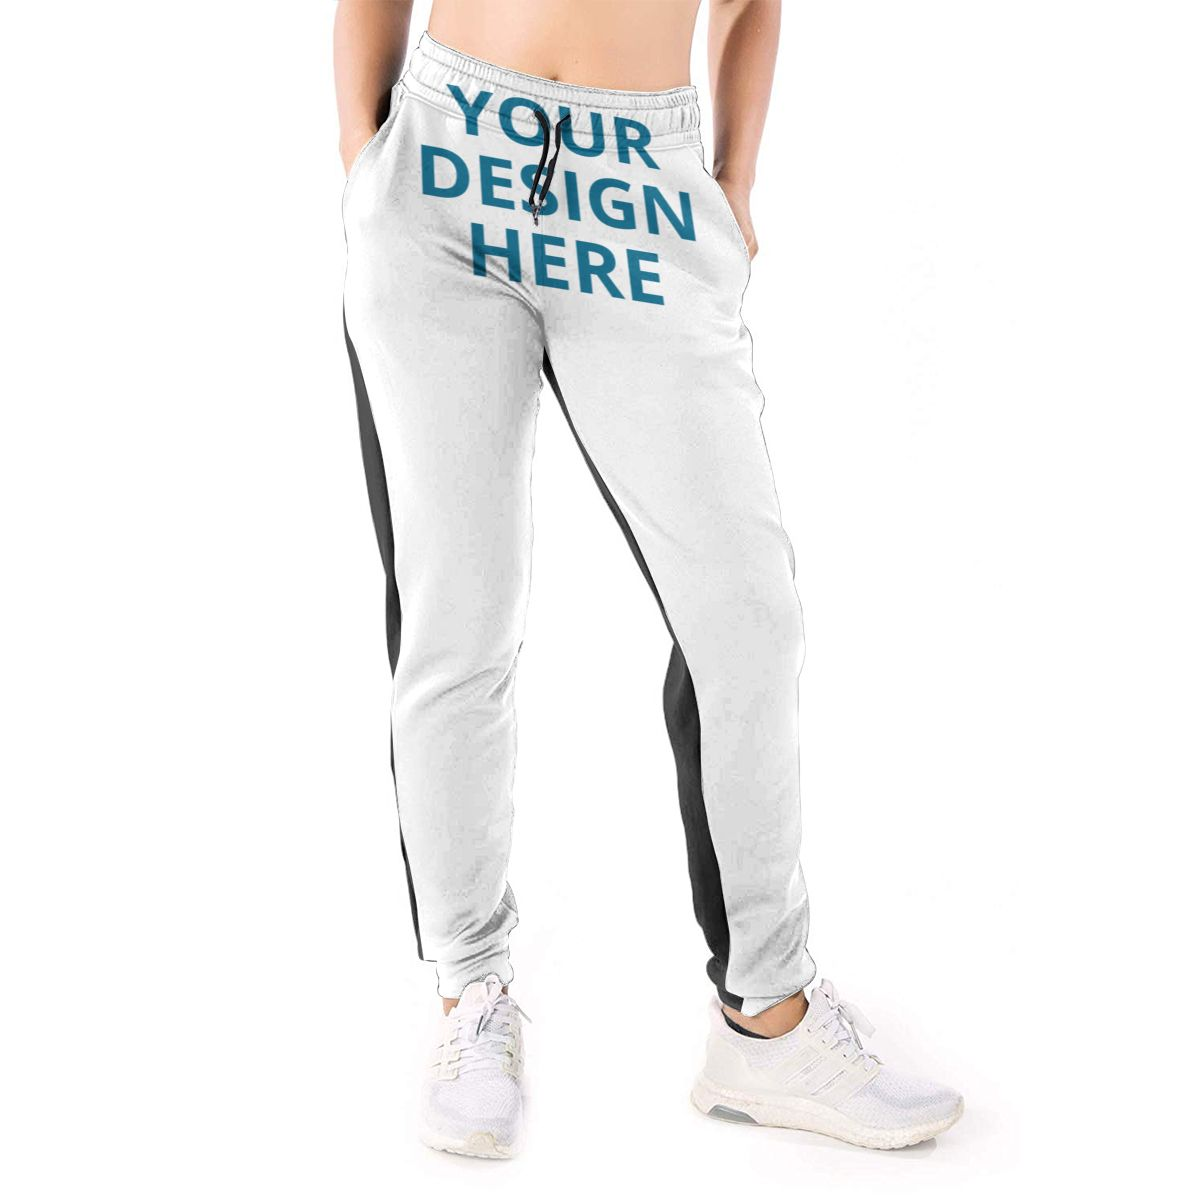 DIY Custom Women's Sweatpants